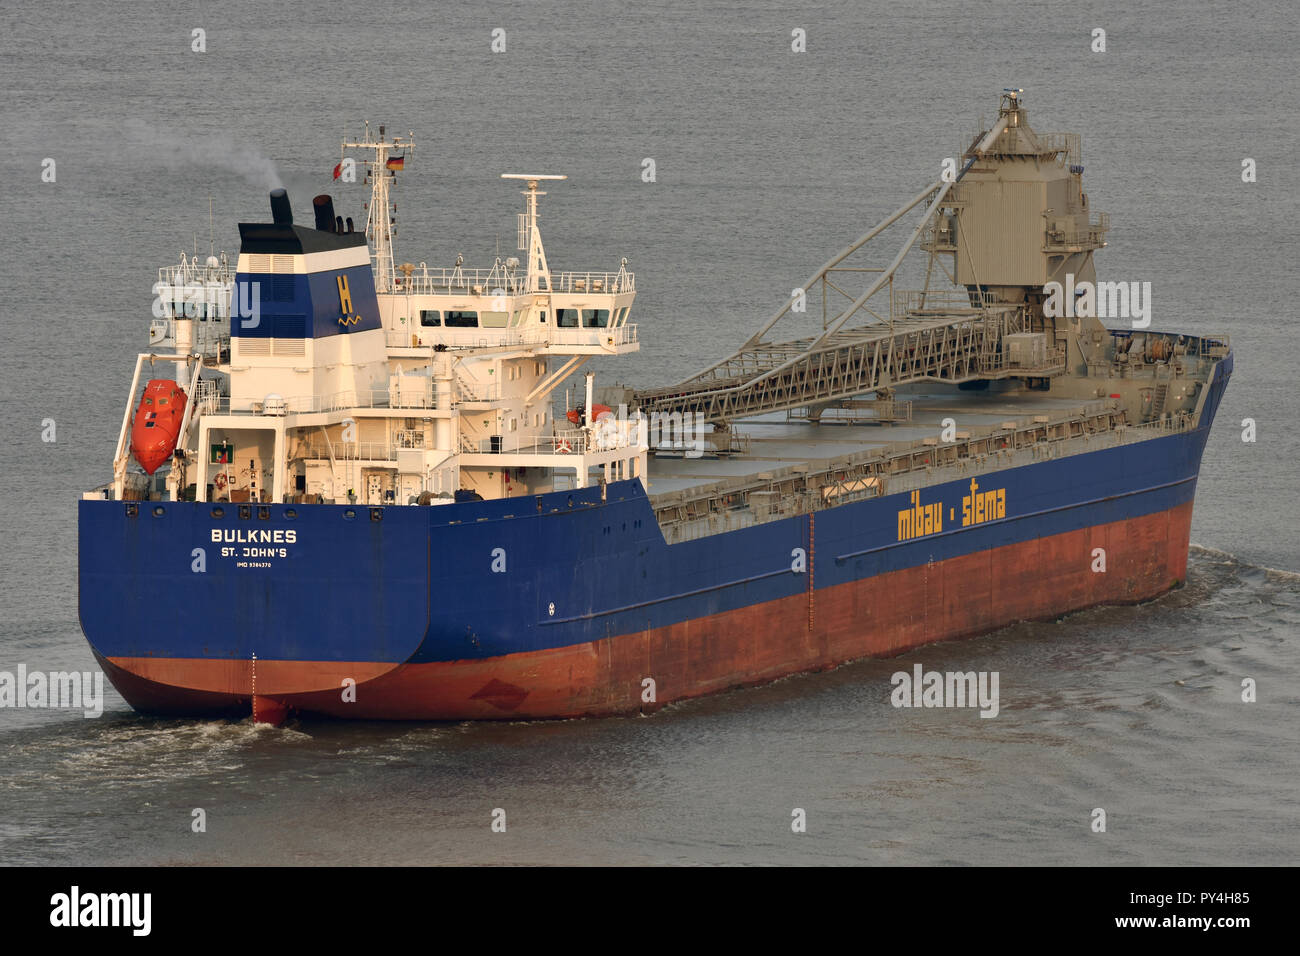 Self-discharging bulkcarrier BulknesStock Photo